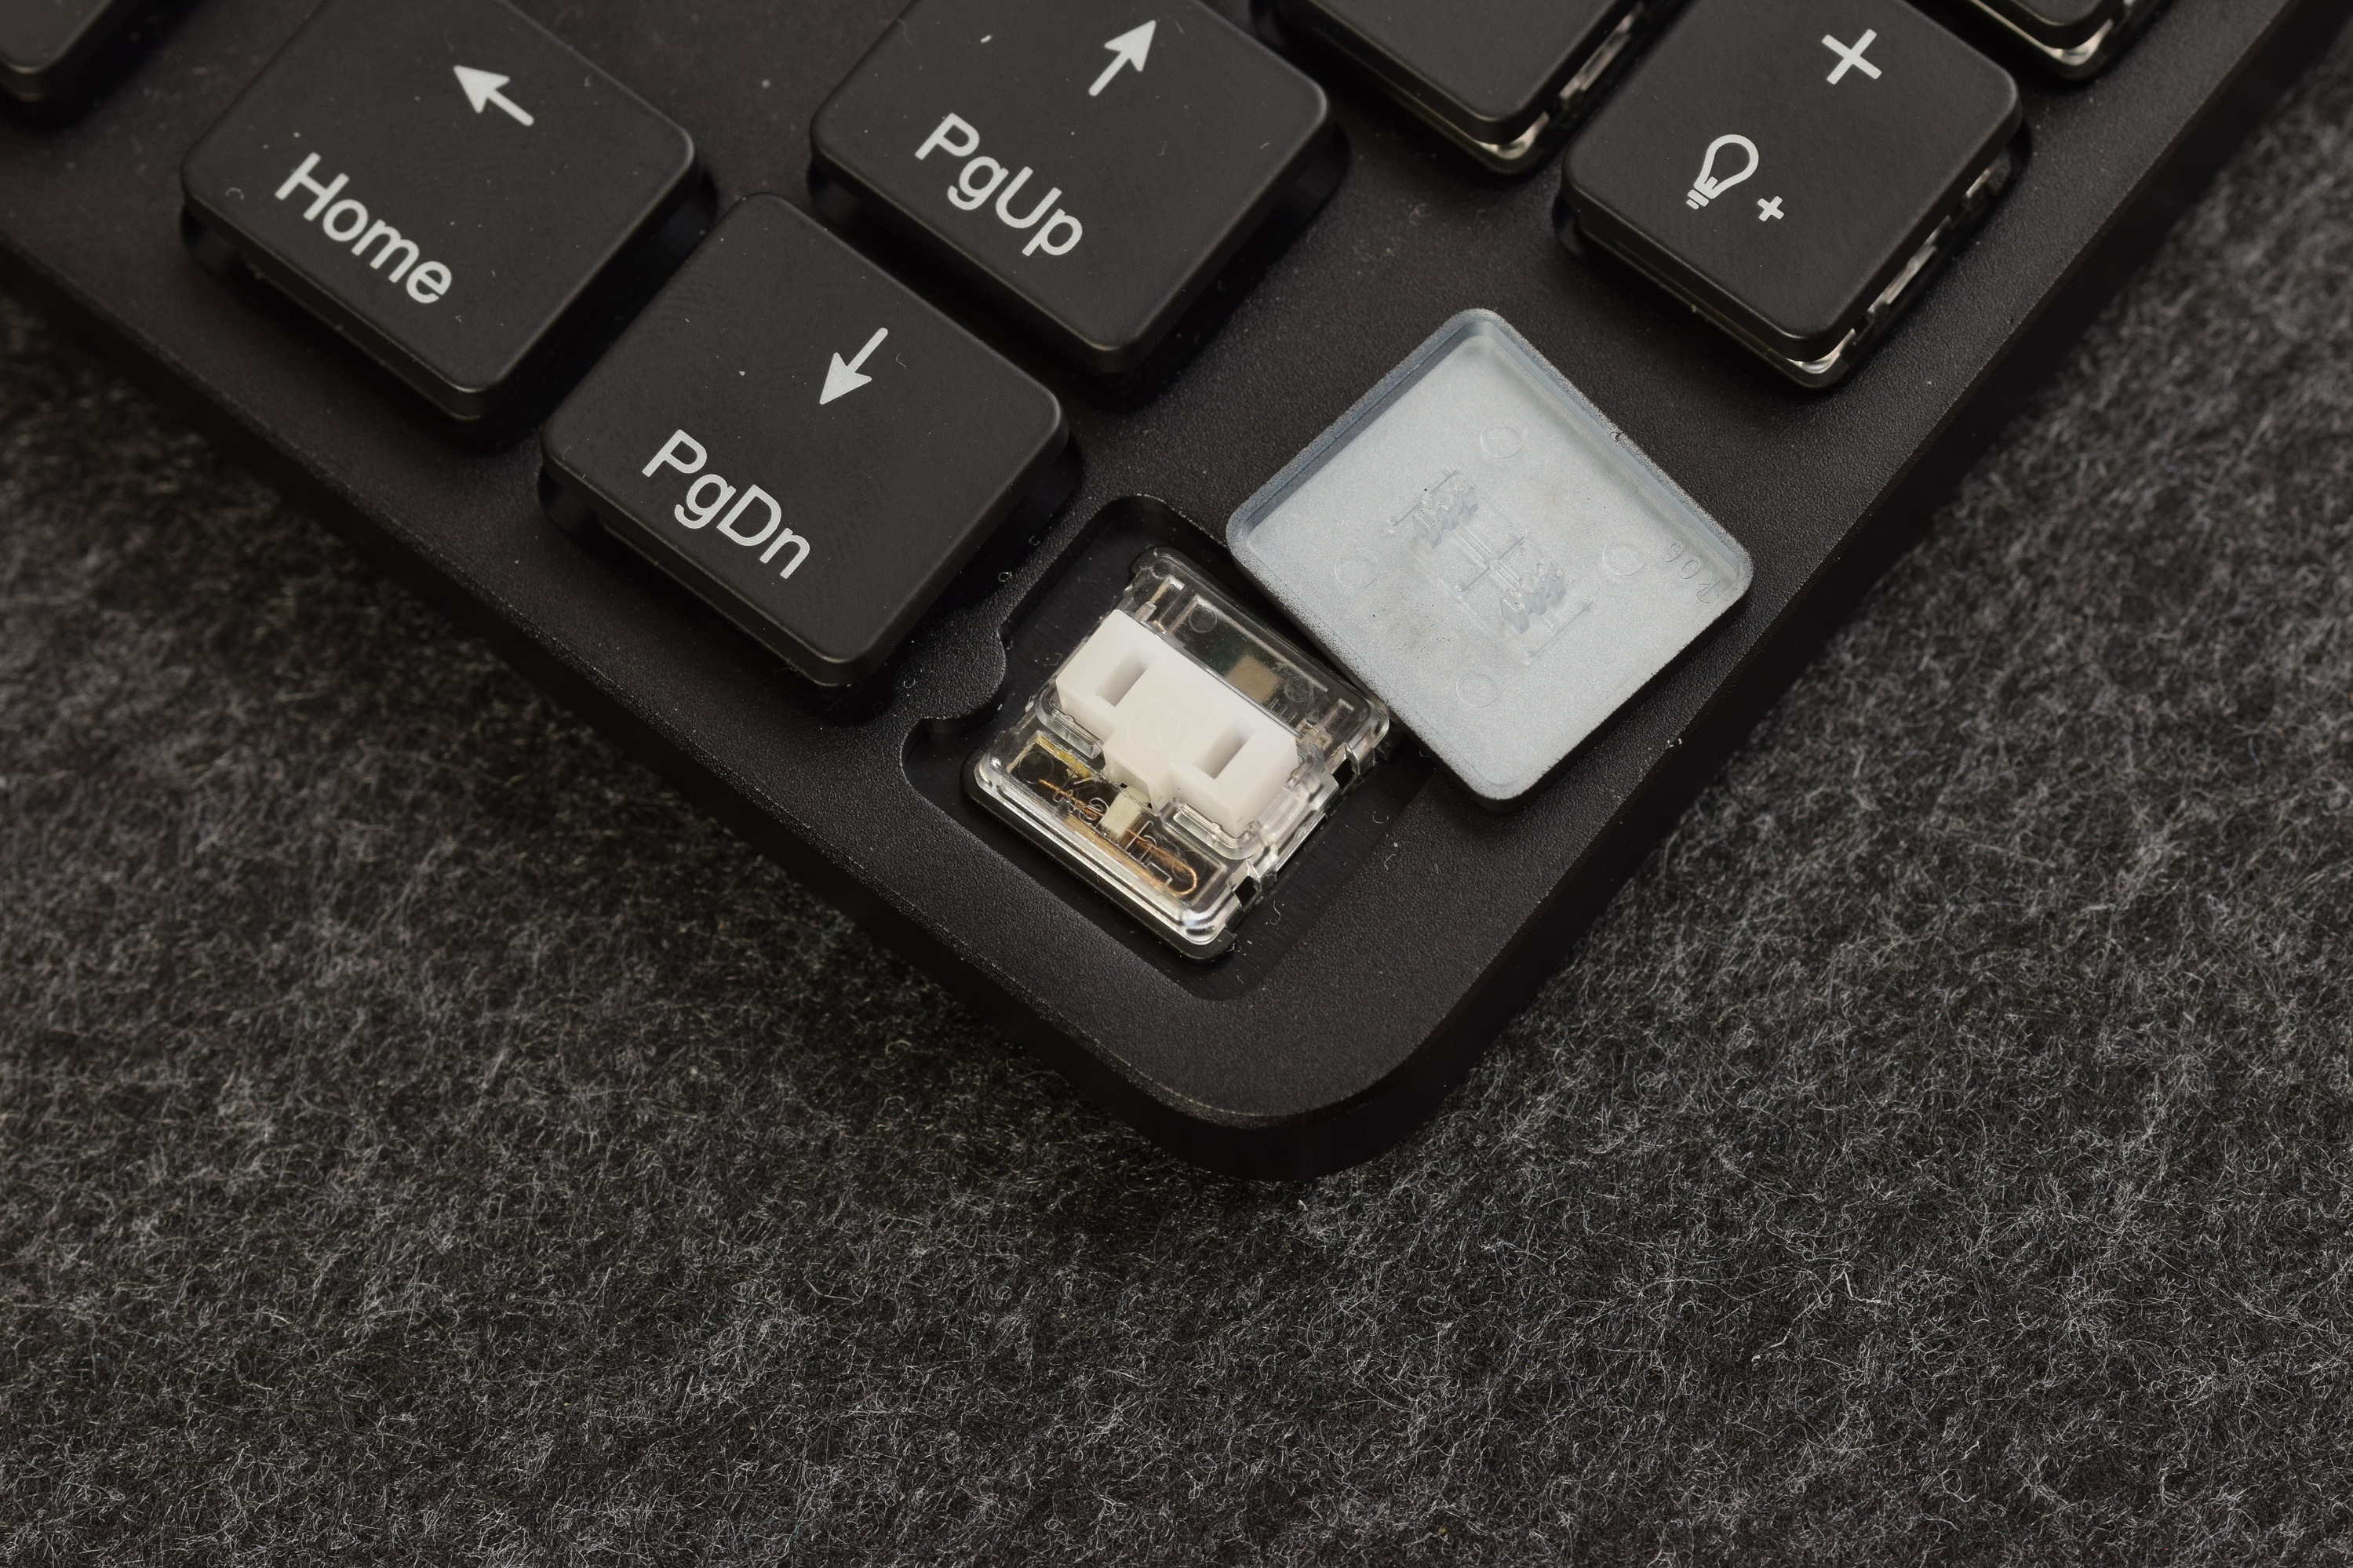 I've been using Kailh Low Profile Switches exclusively for a year